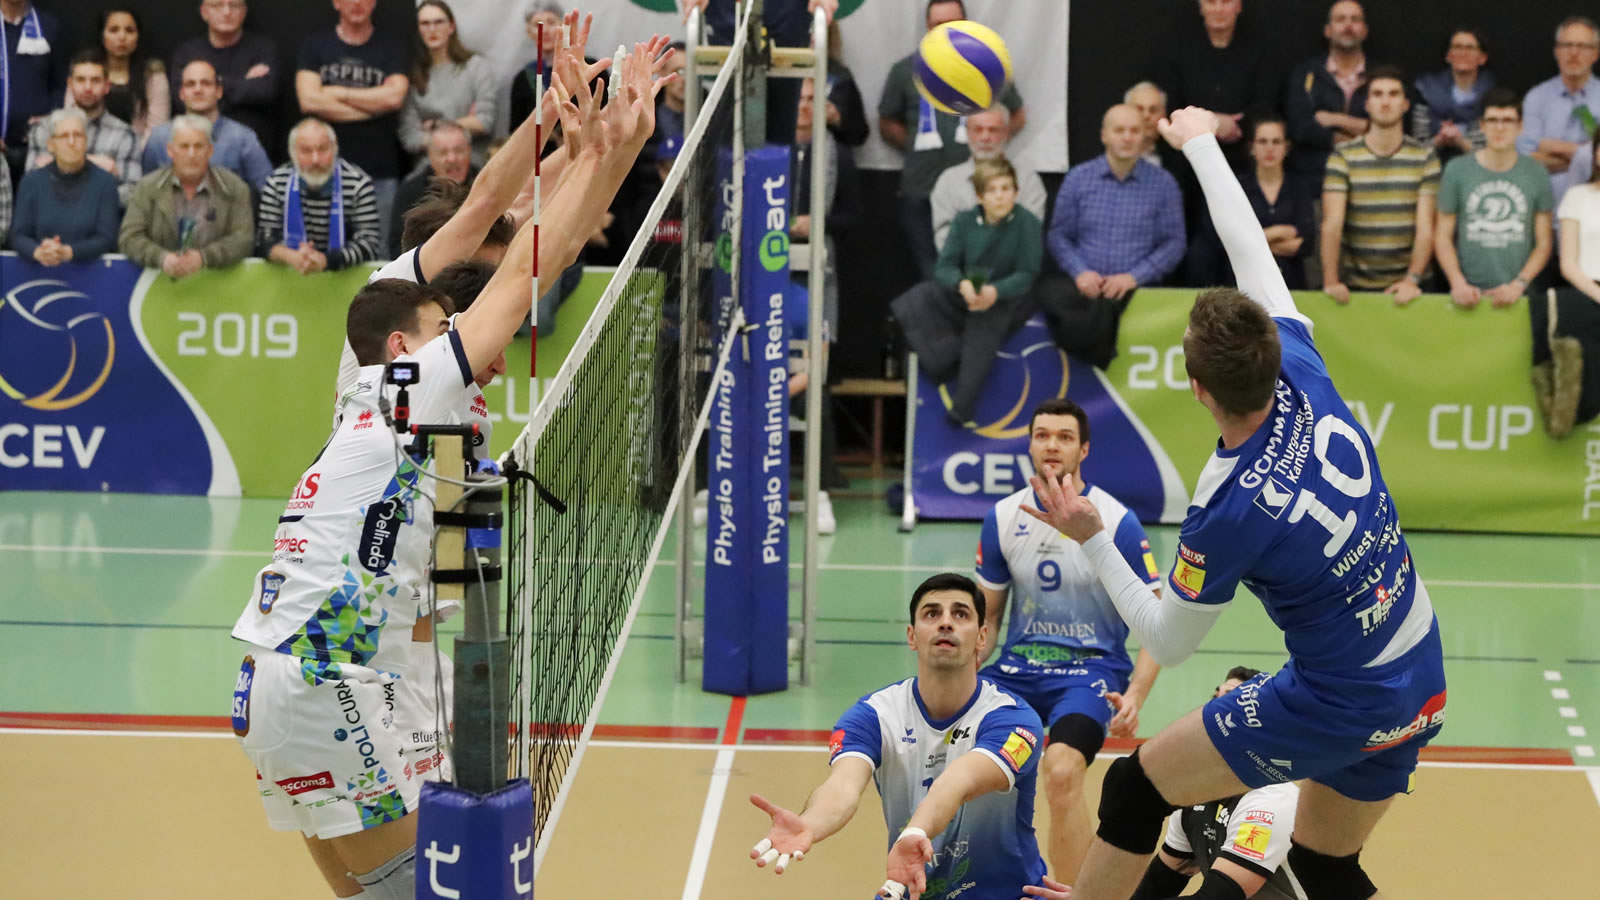 LINDAREN Volley Amriswil – biogas volley näfels